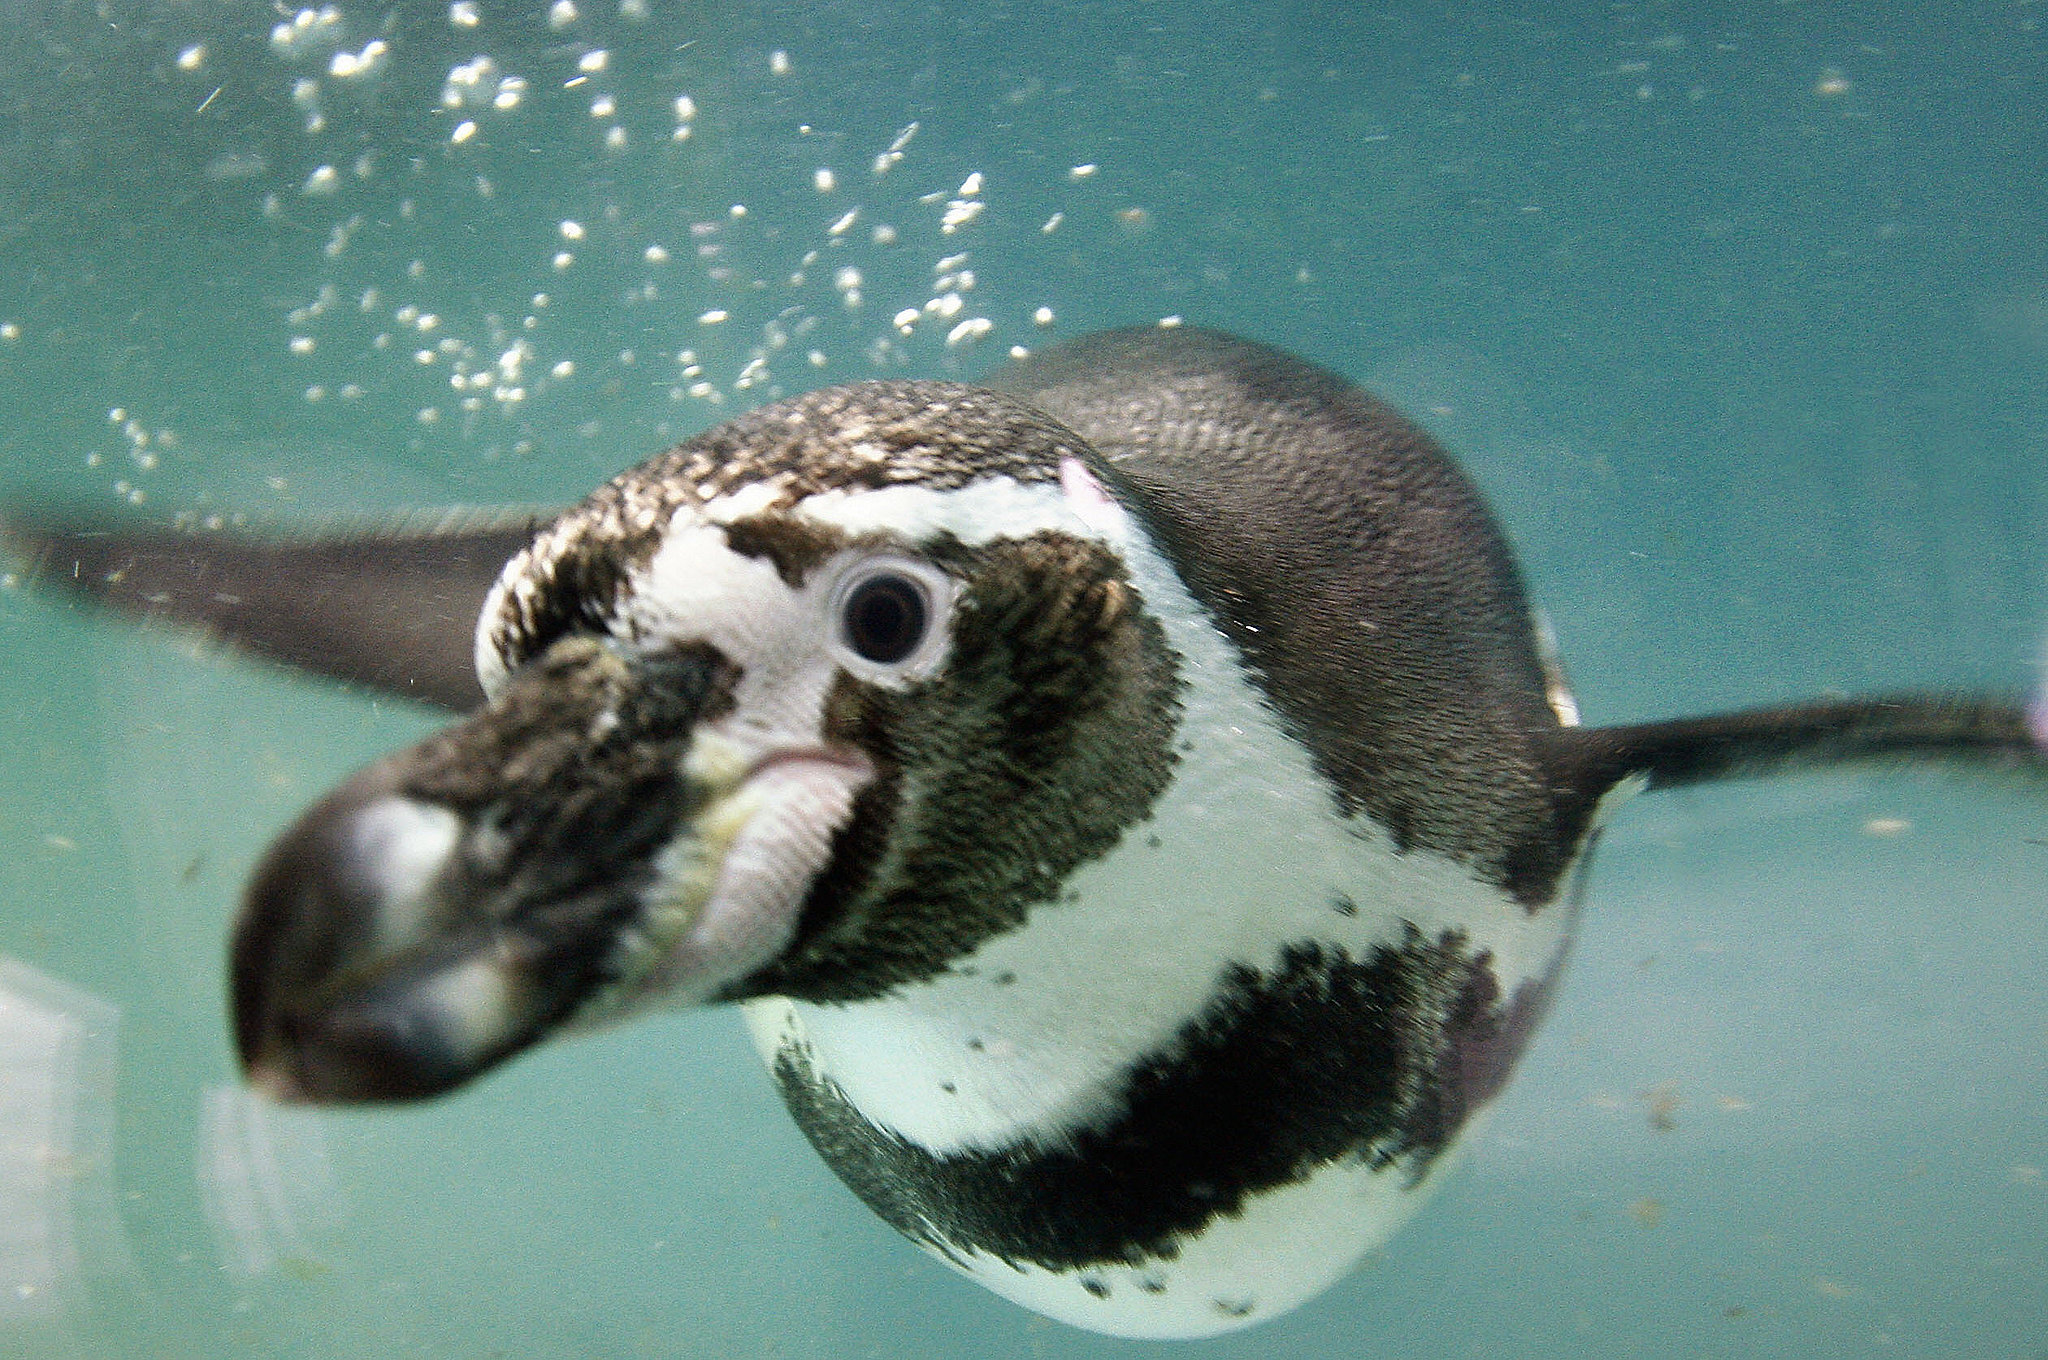 Humboldt penguins, also known as Peruvian penguins, are warm-weather ...